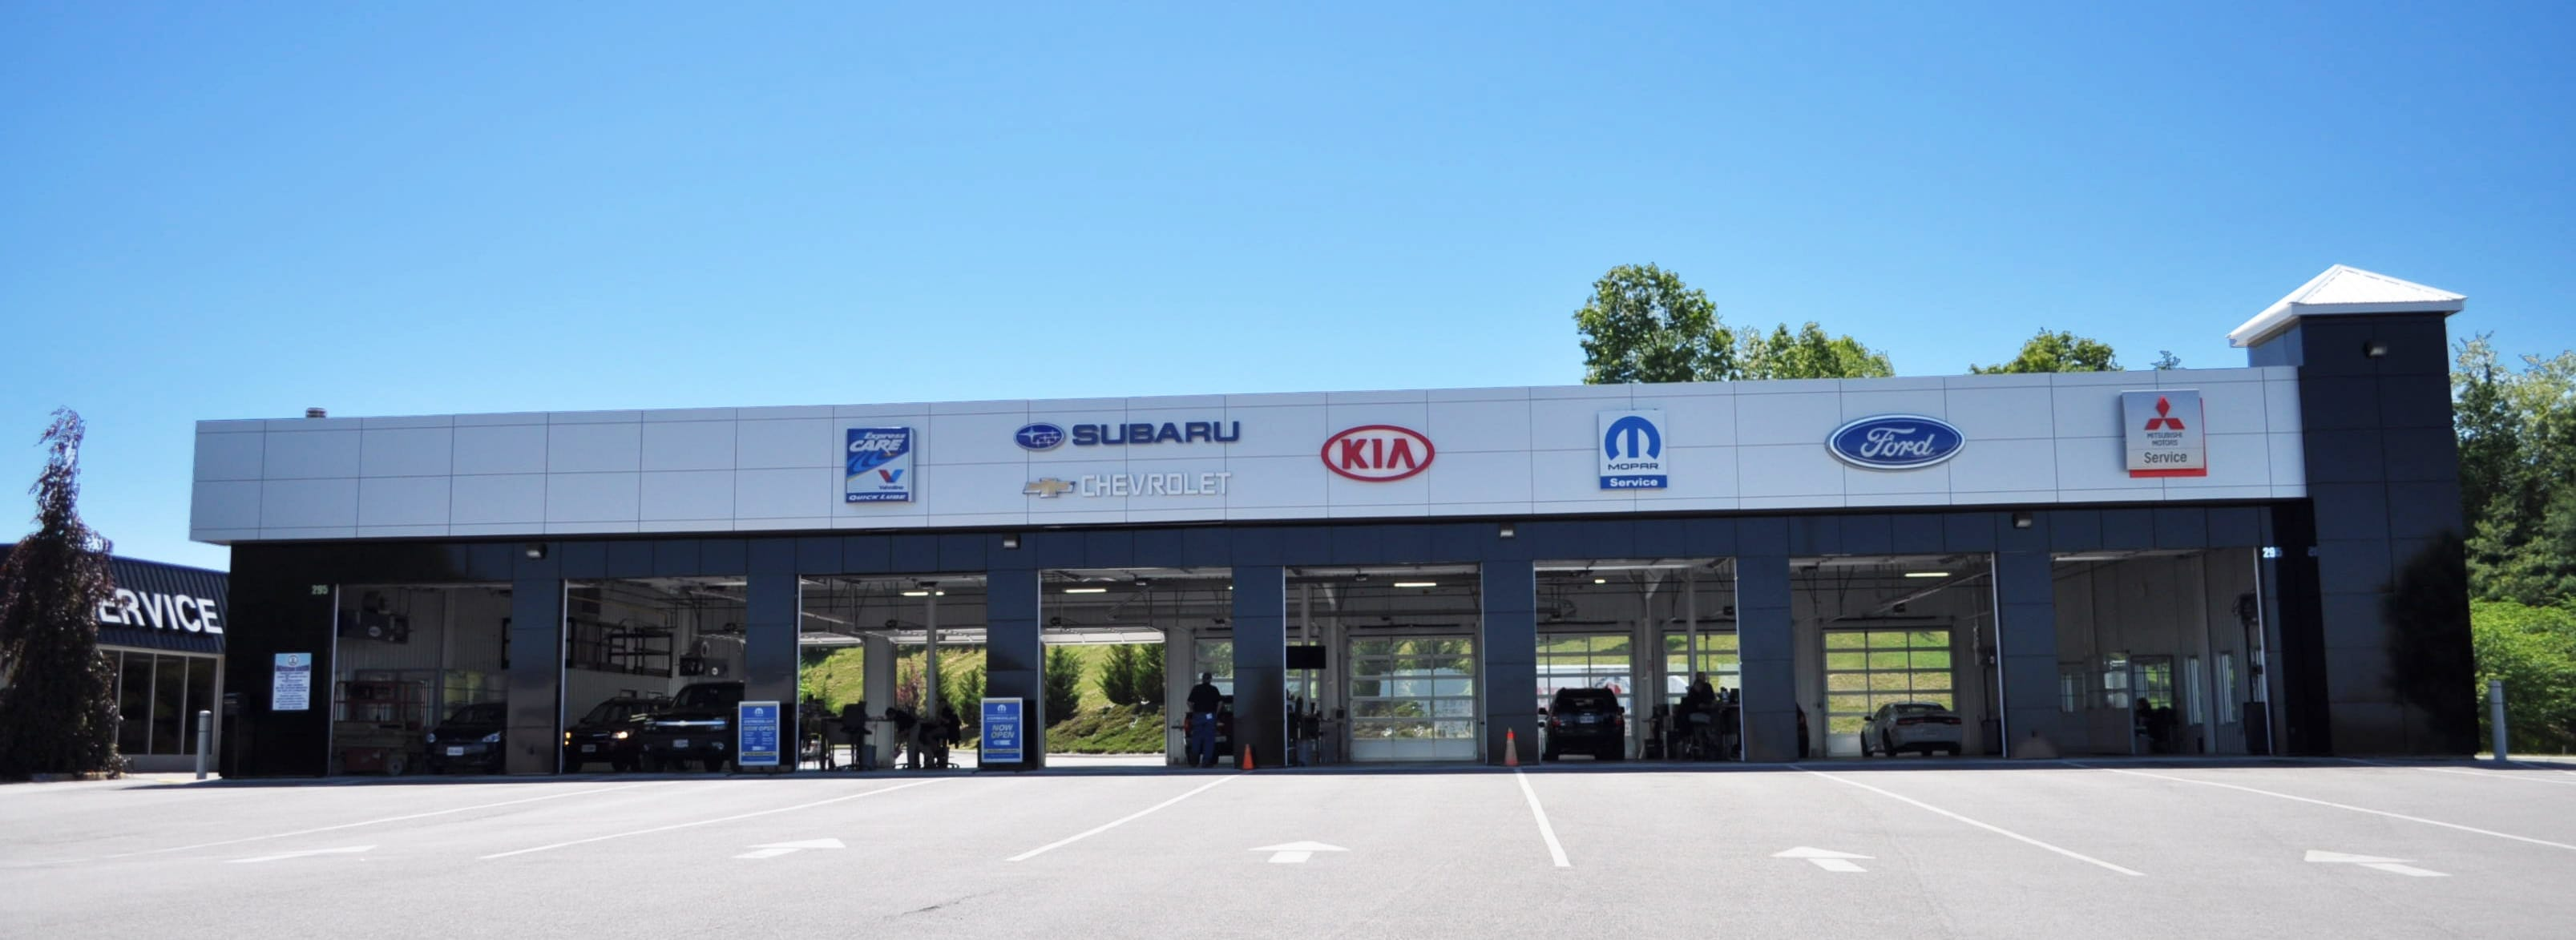 Subaru Service Center Near Blacksburg Motor Mile Subaru